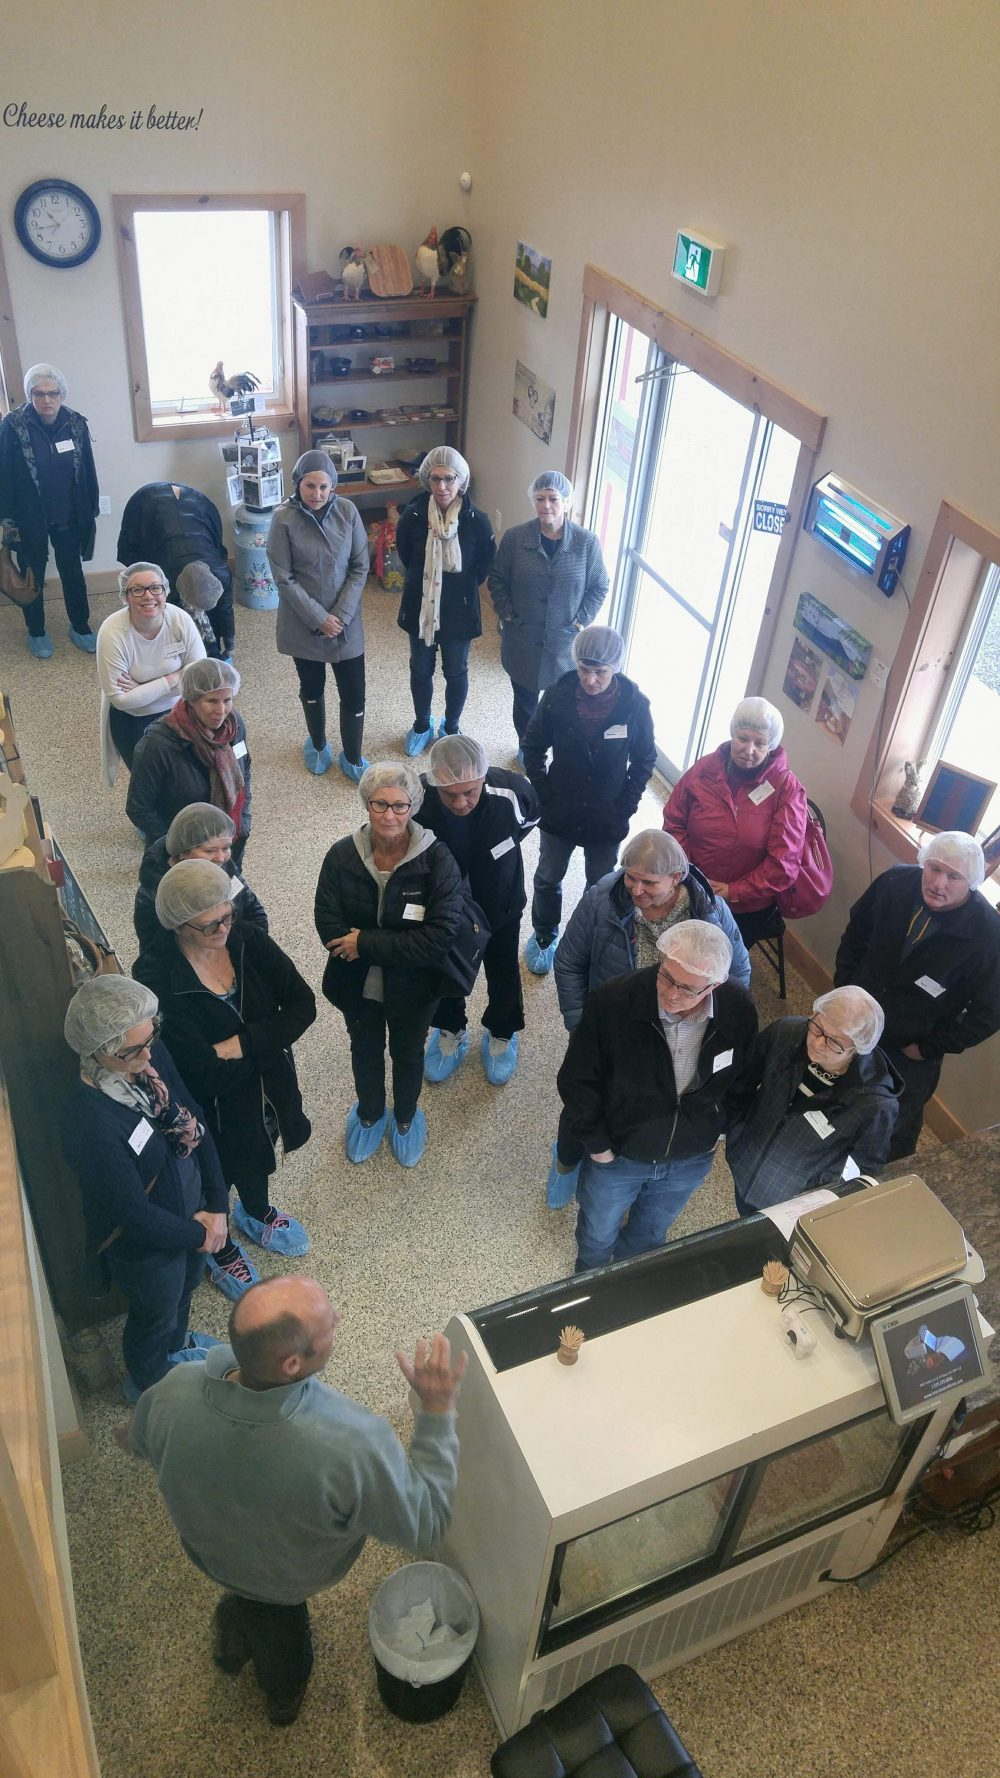 attendees preparing to go for a tour of stonetown cheese company in st mary's. All attendees are wearing blue booties and hair nets before in the main shop before entering in to the aging areas of the dairy.